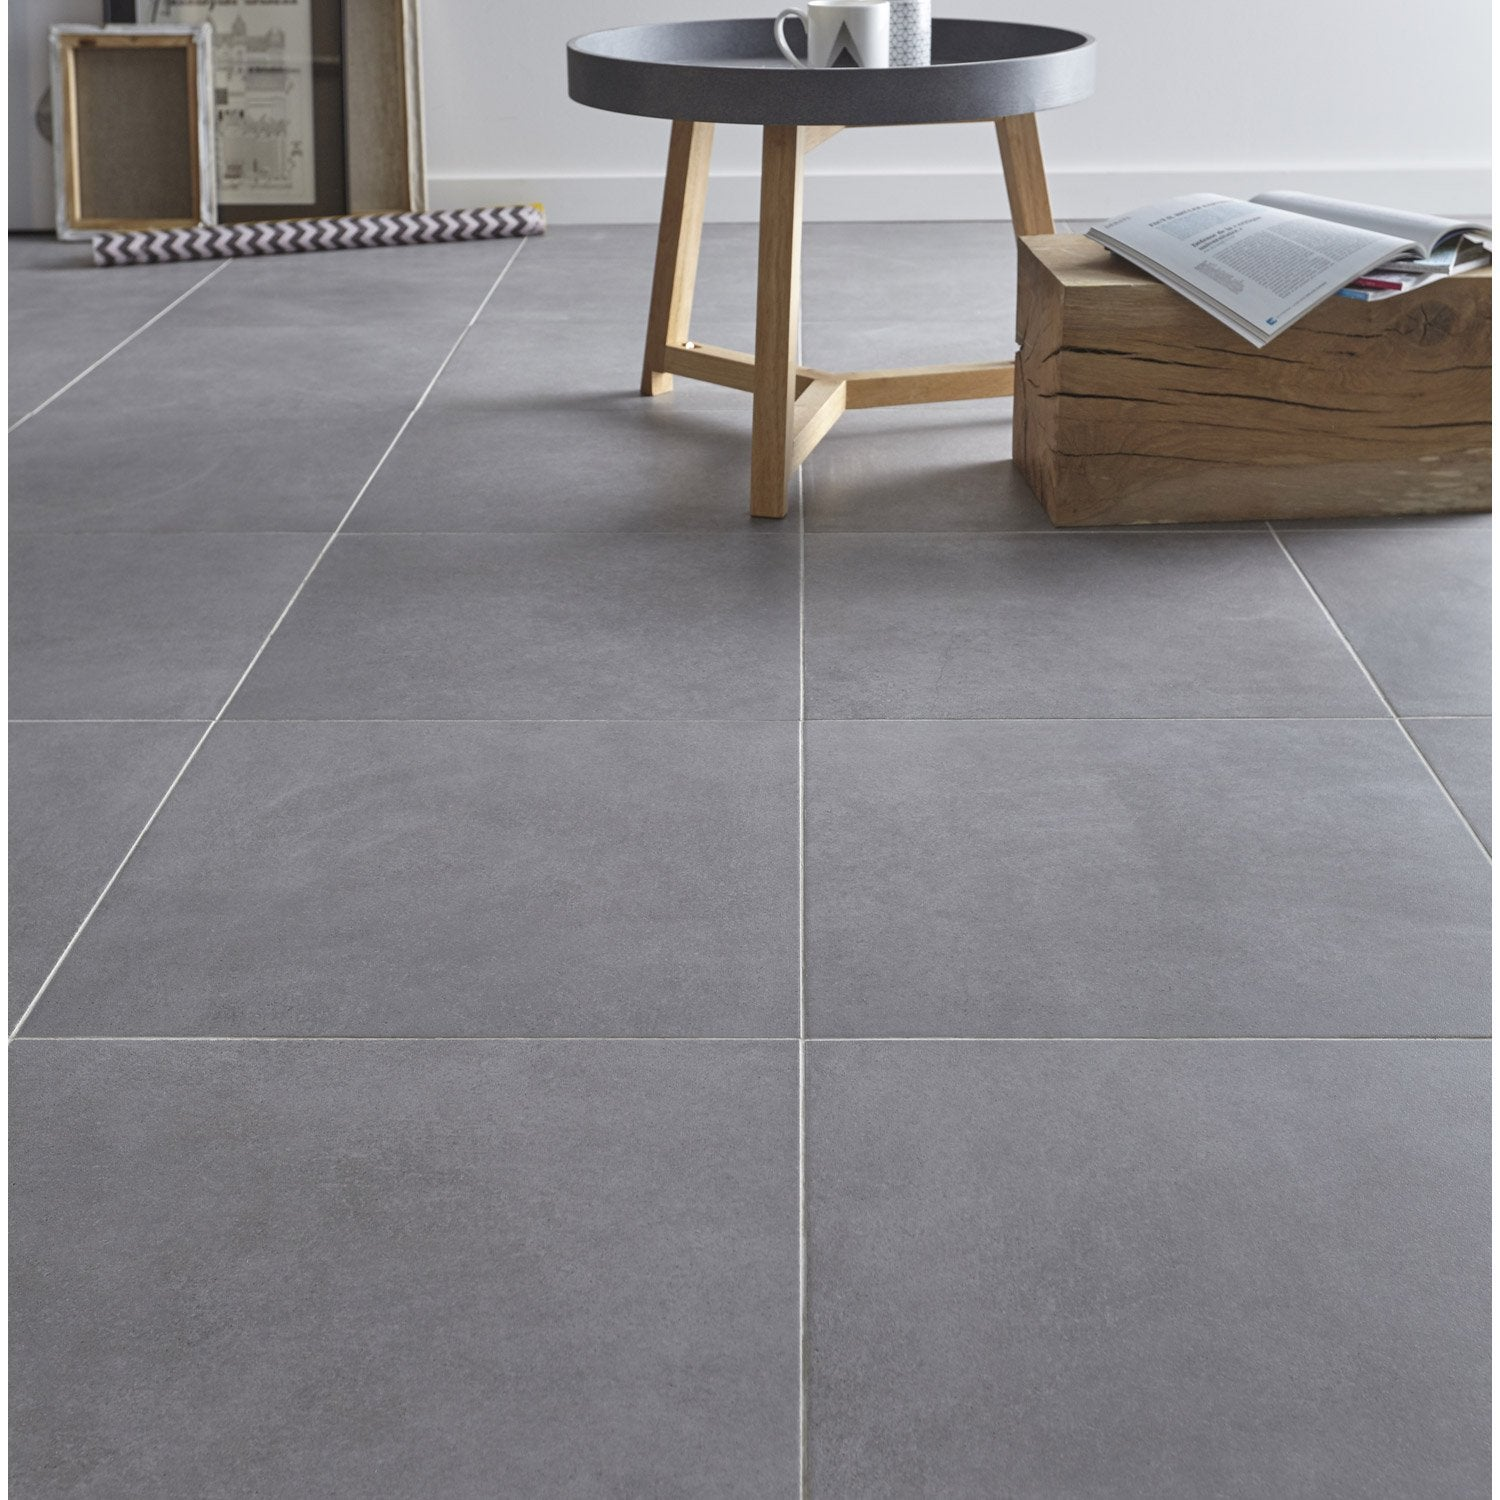 Carrelage sol gris effet b ton madison x cm for Carrelage gris leroy merlin